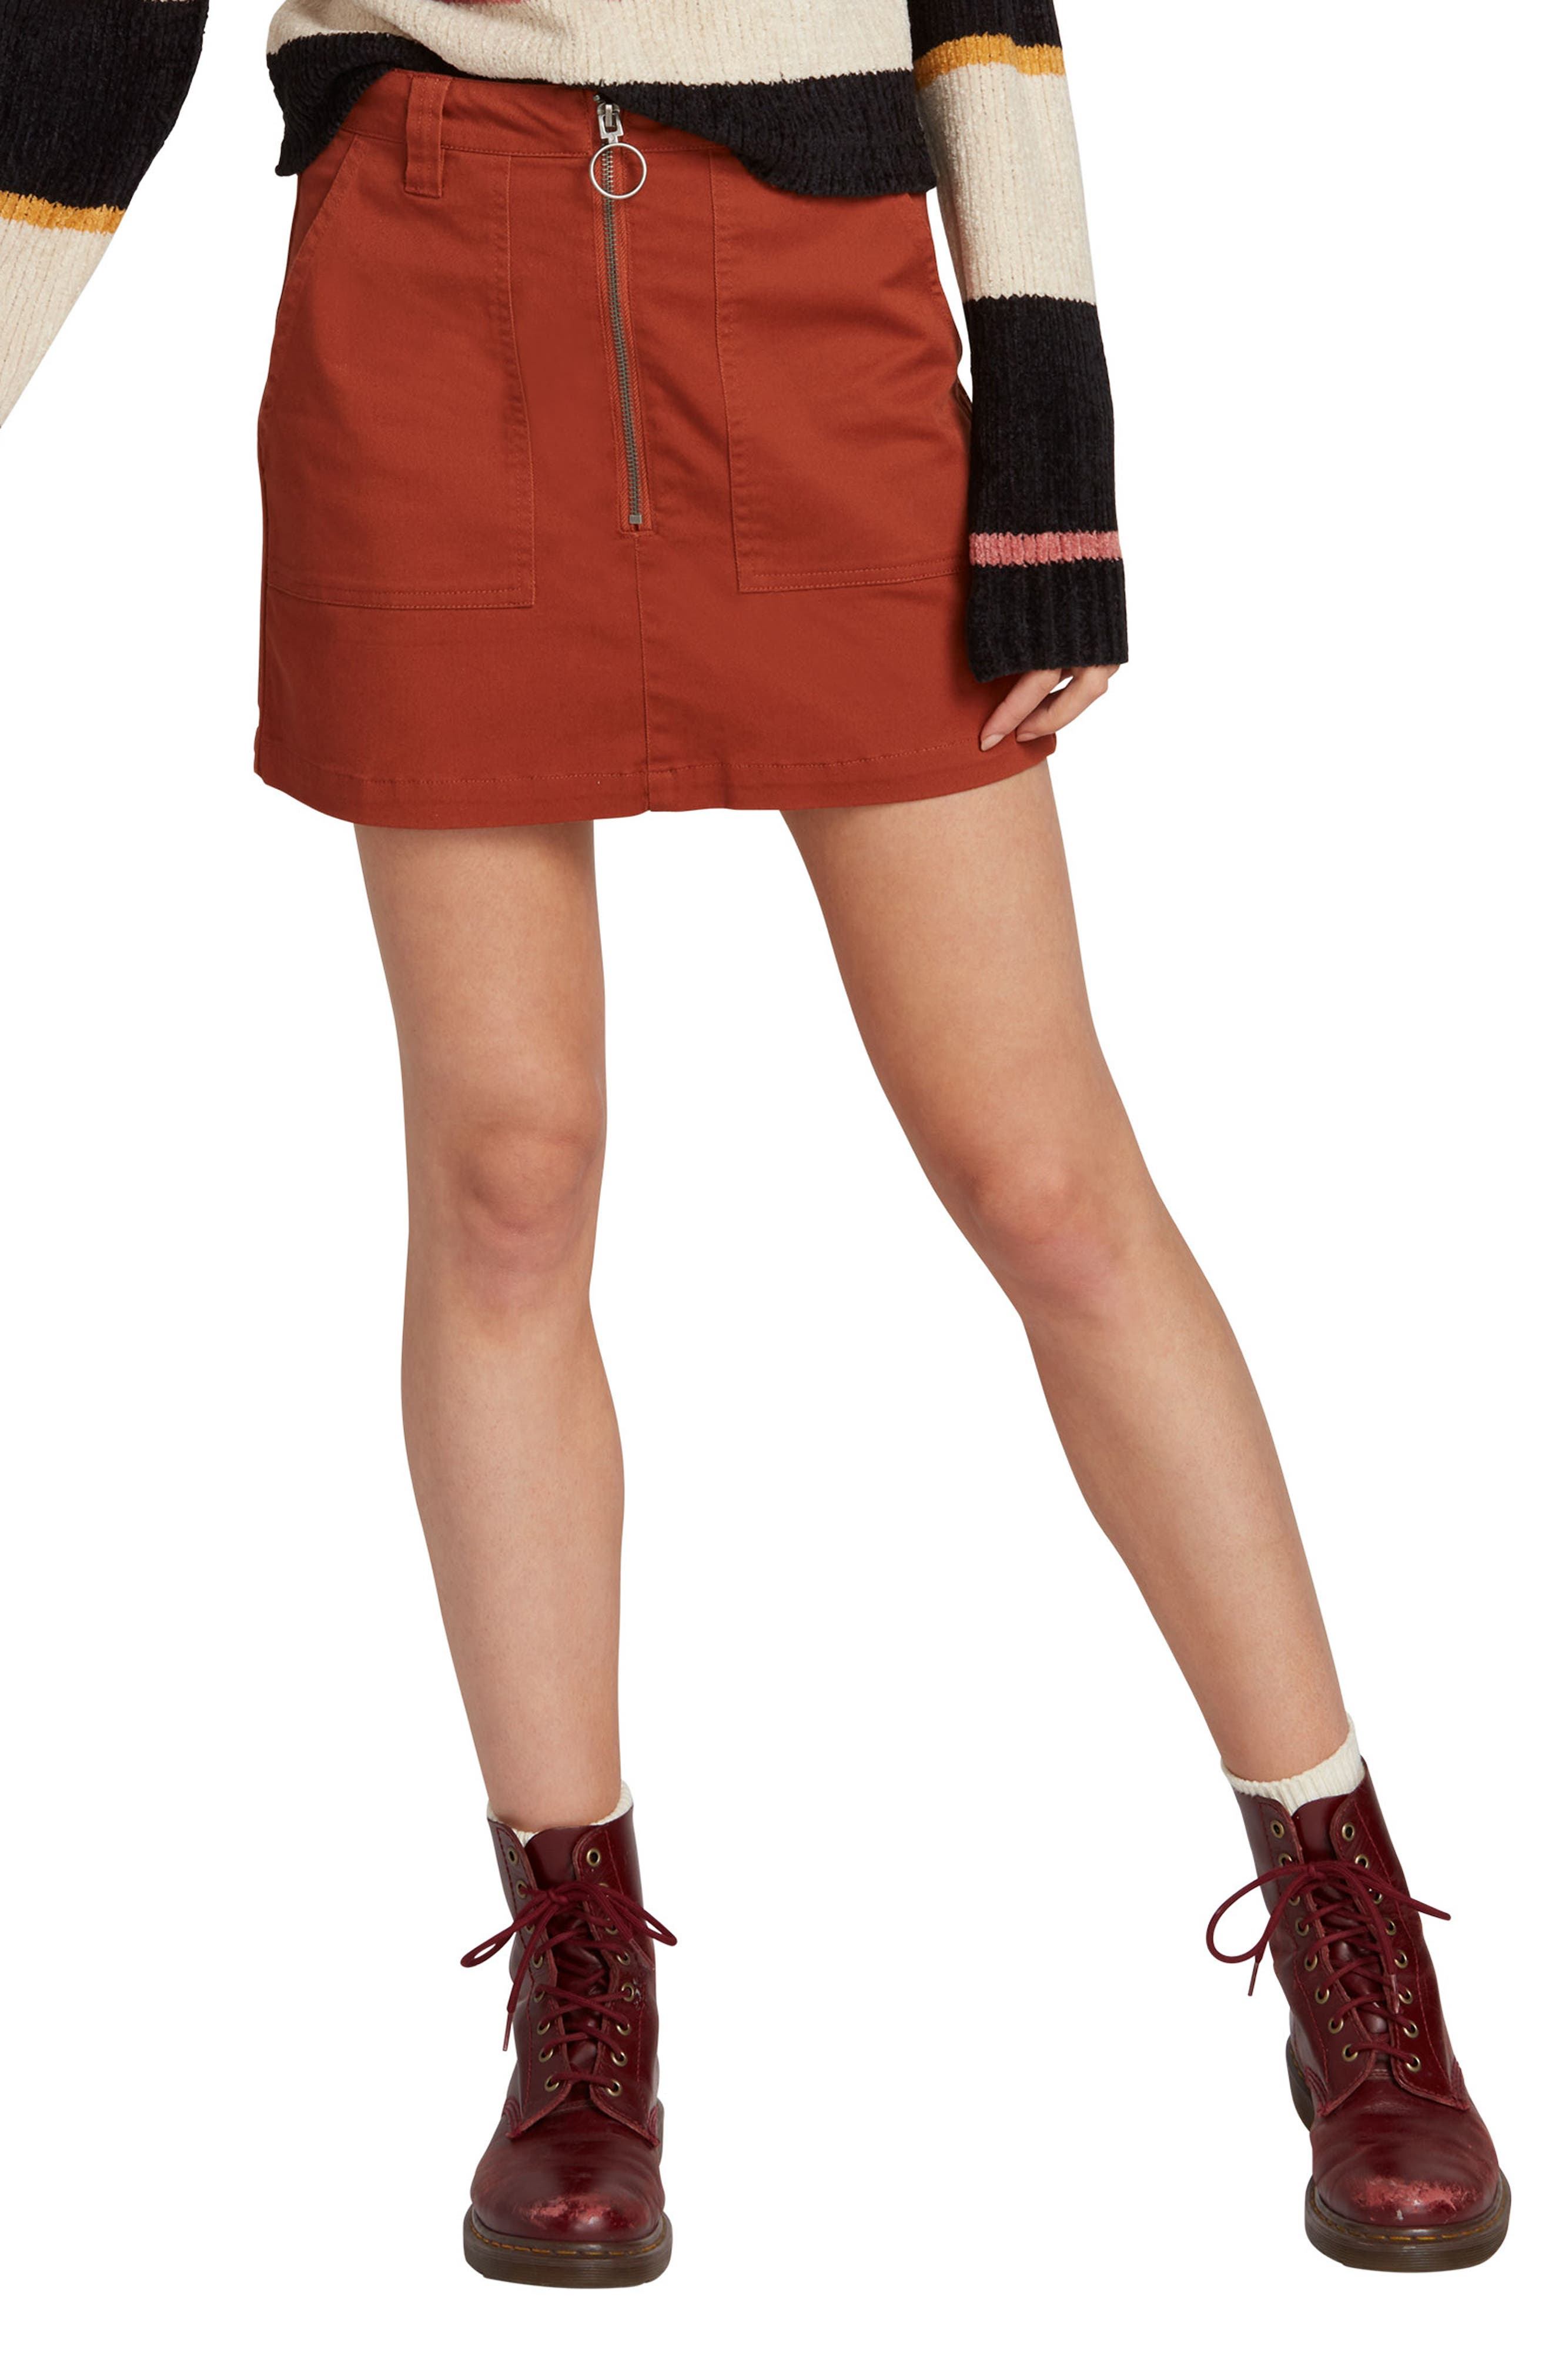 622b35dee7a1 Women's Skirts New Arrivals: Clothing, Shoes & Beauty | Nordstrom